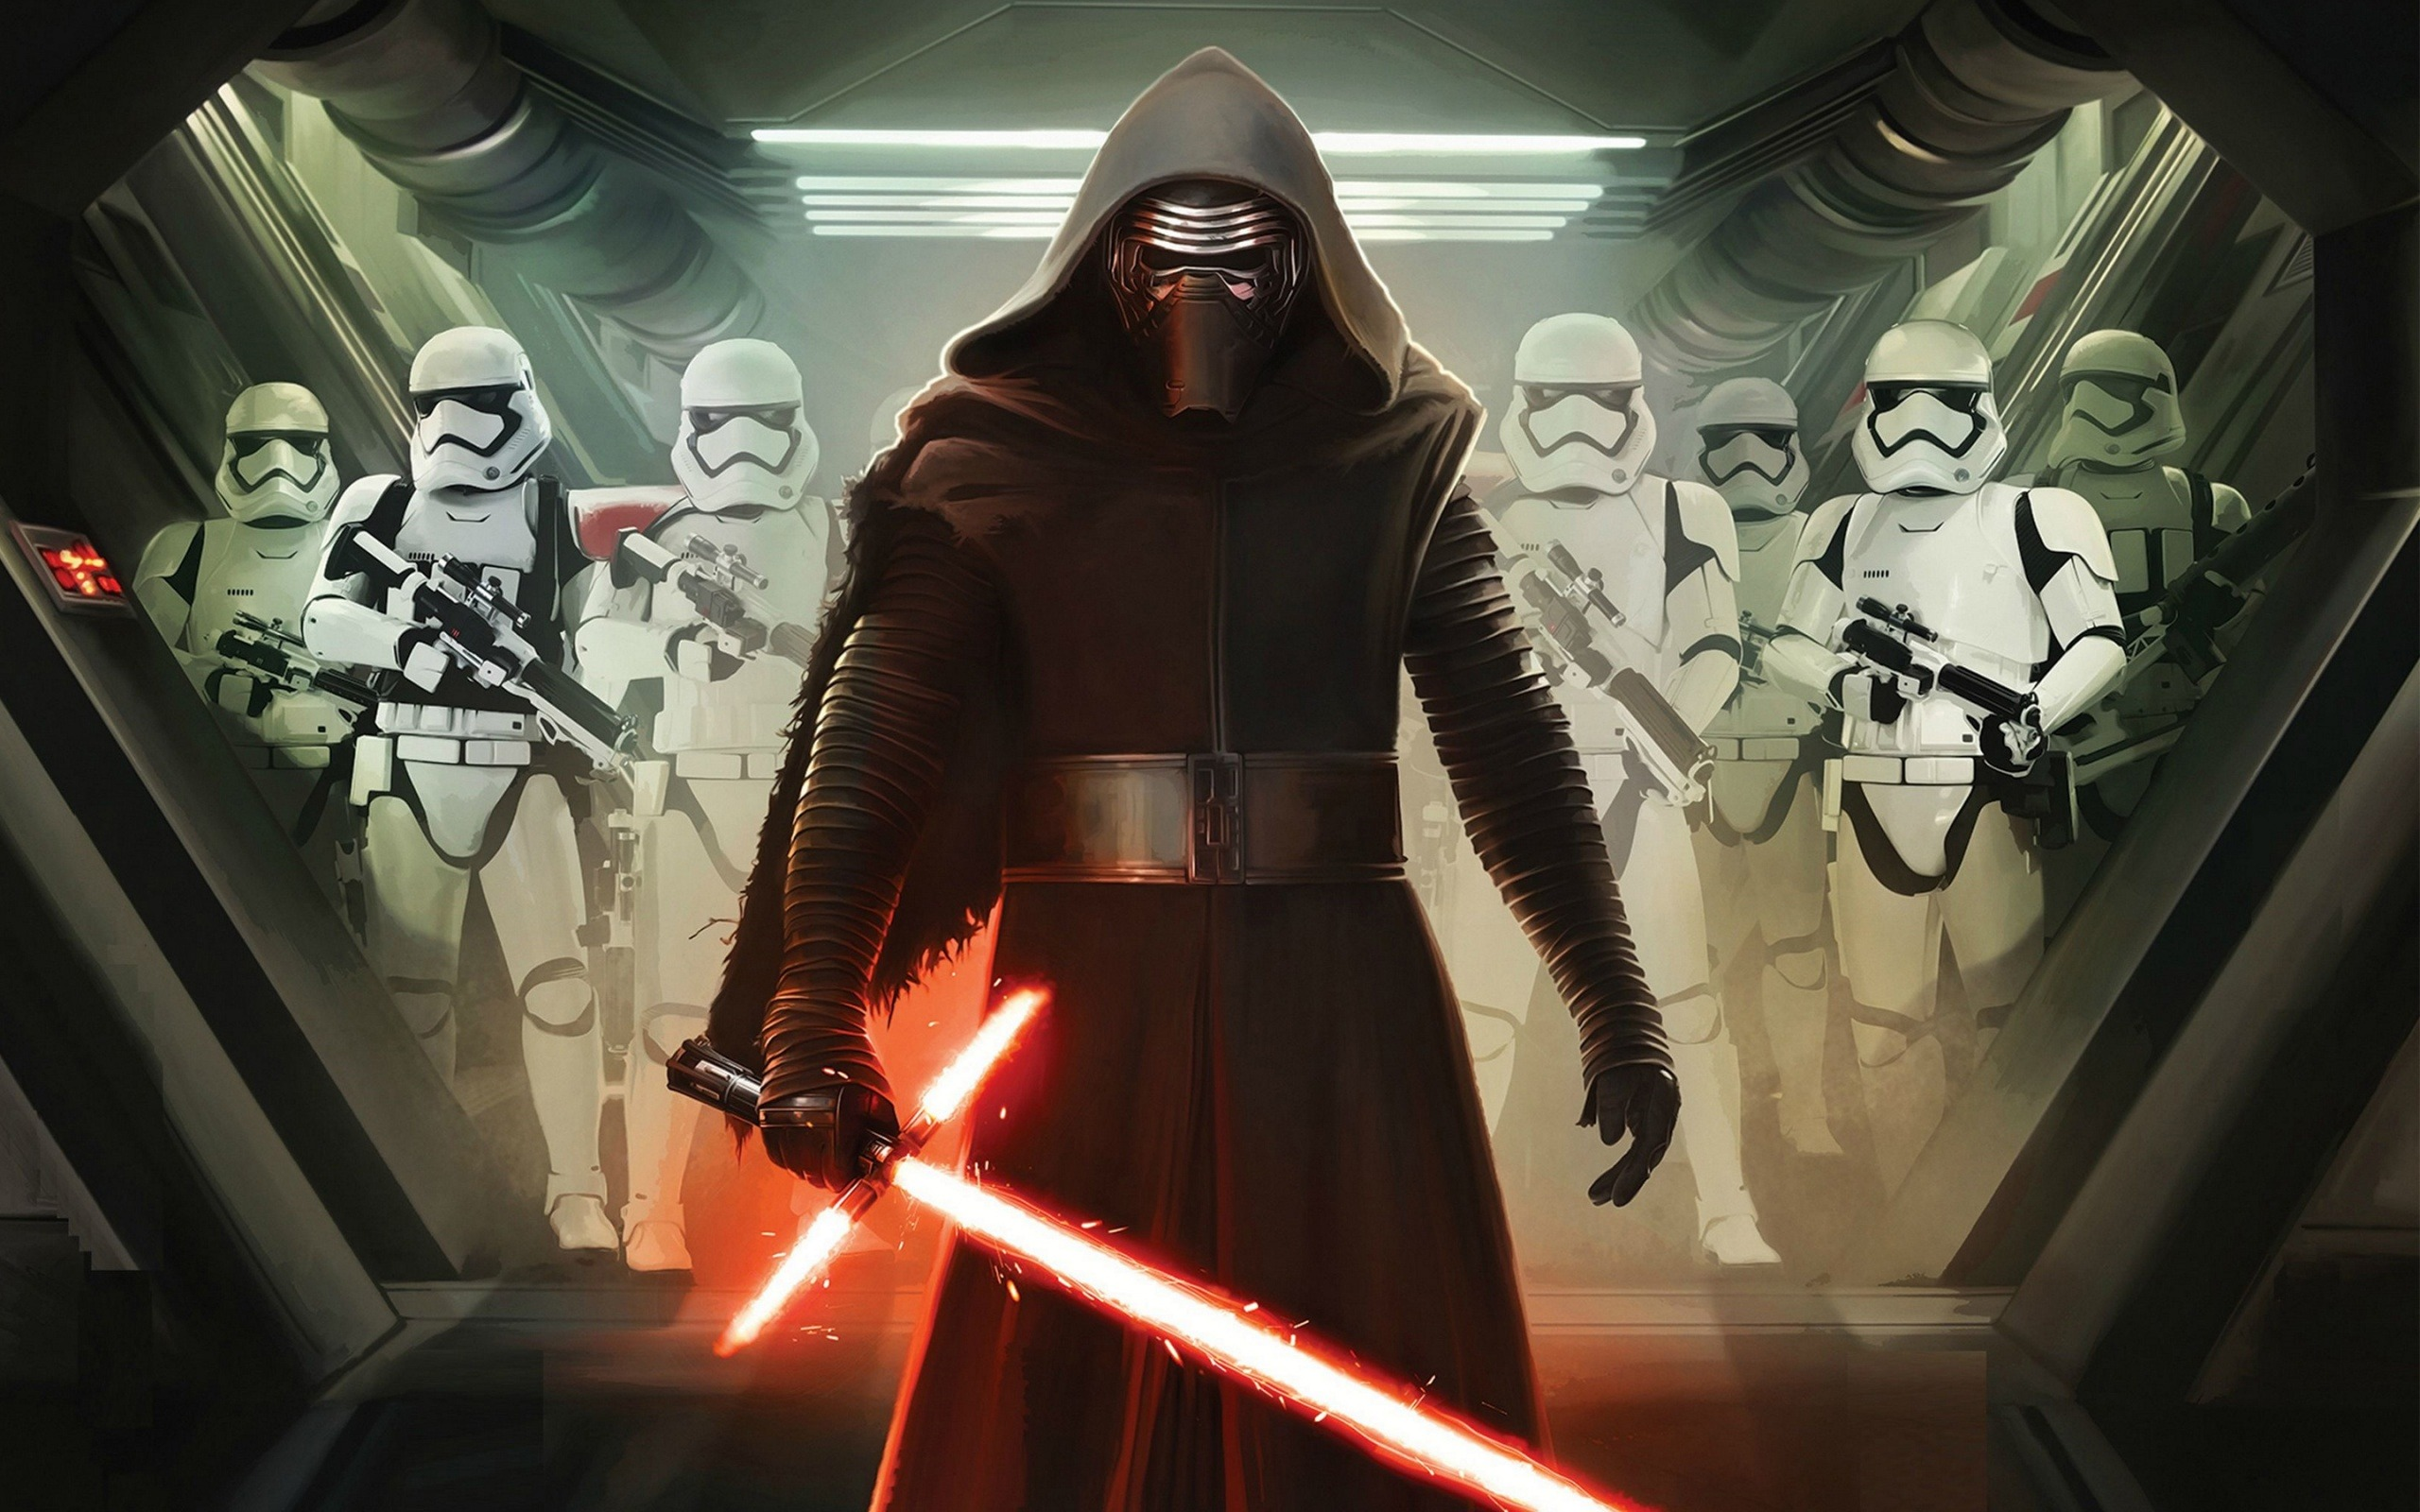 Star Wars The Force Awakens 2015 Hd Wallpaper 02 Preview